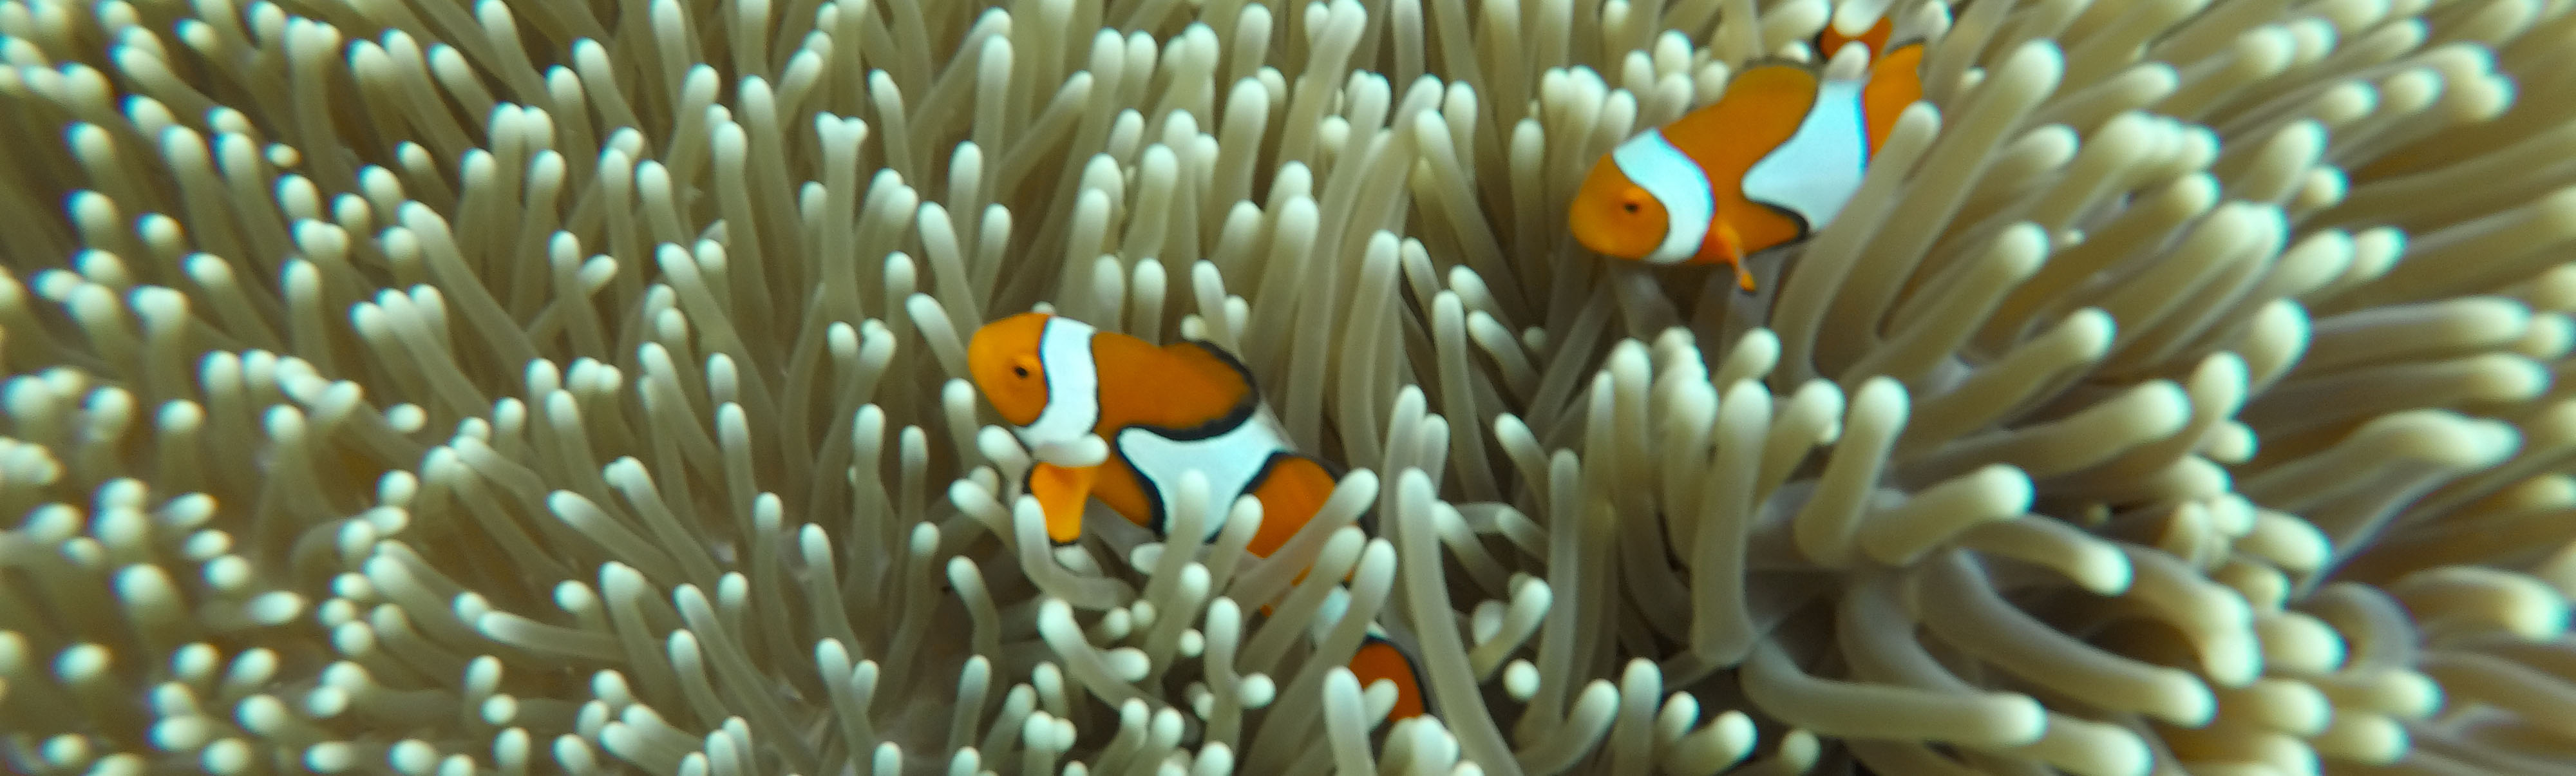 Nemo am Great Barrier Reef